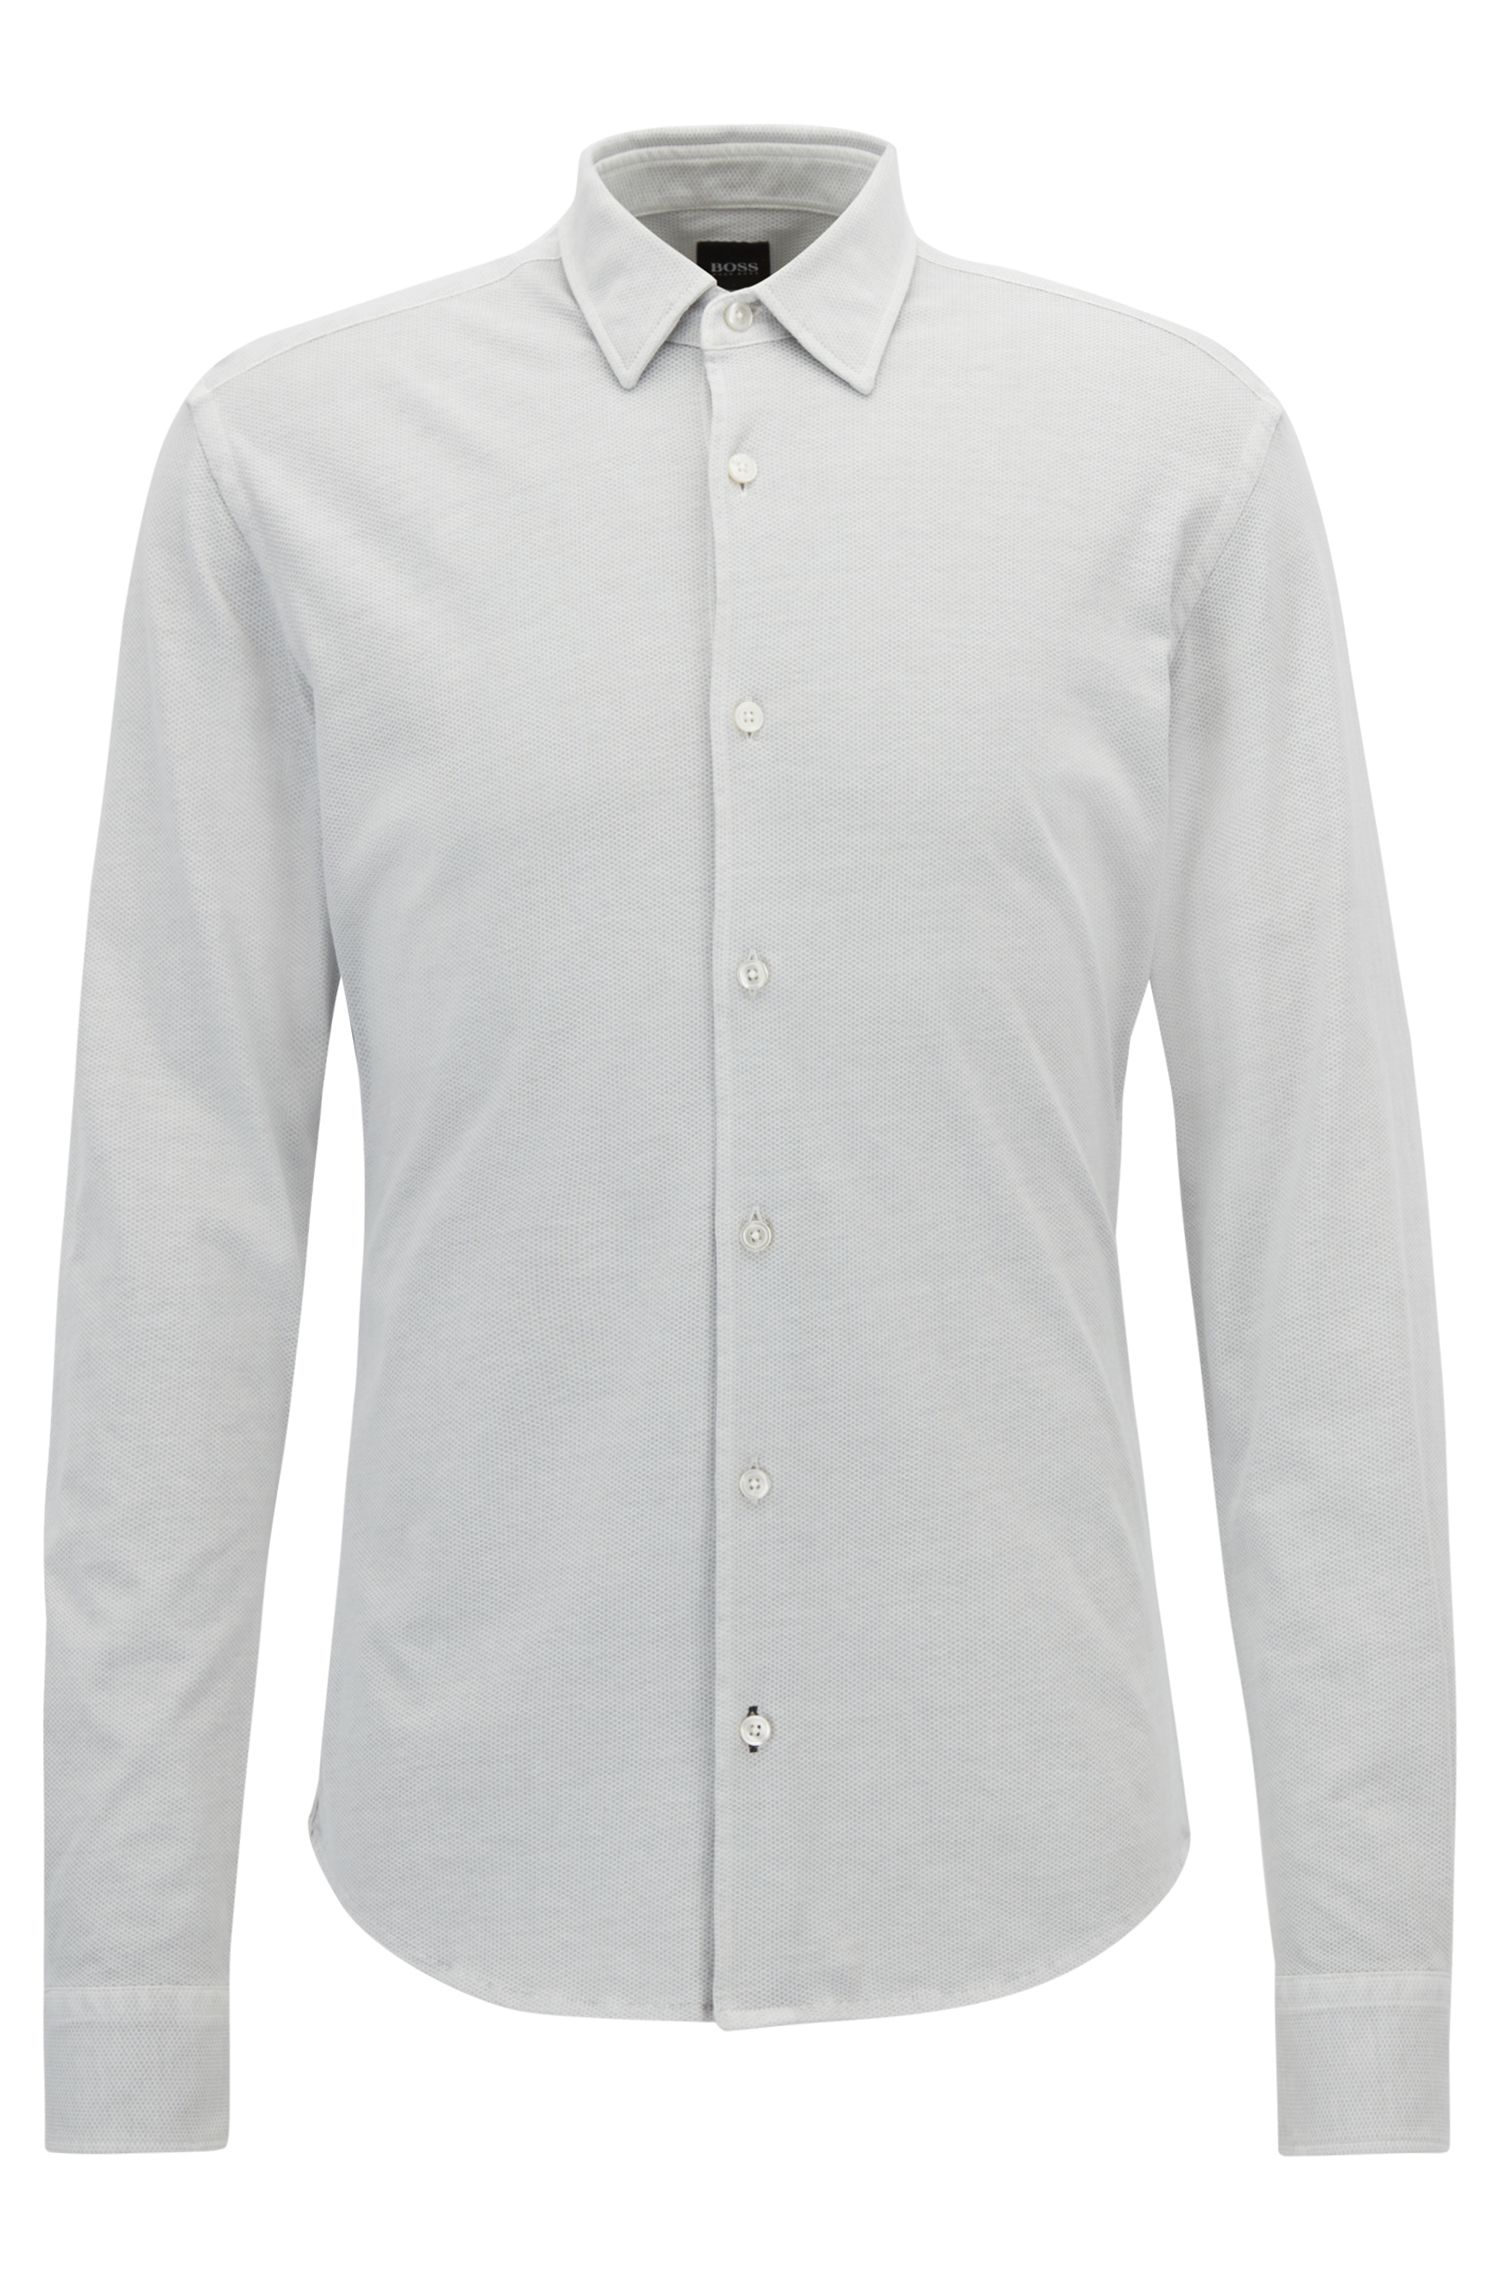 Cotton Sport Shirt, Slim Fit | Reid F